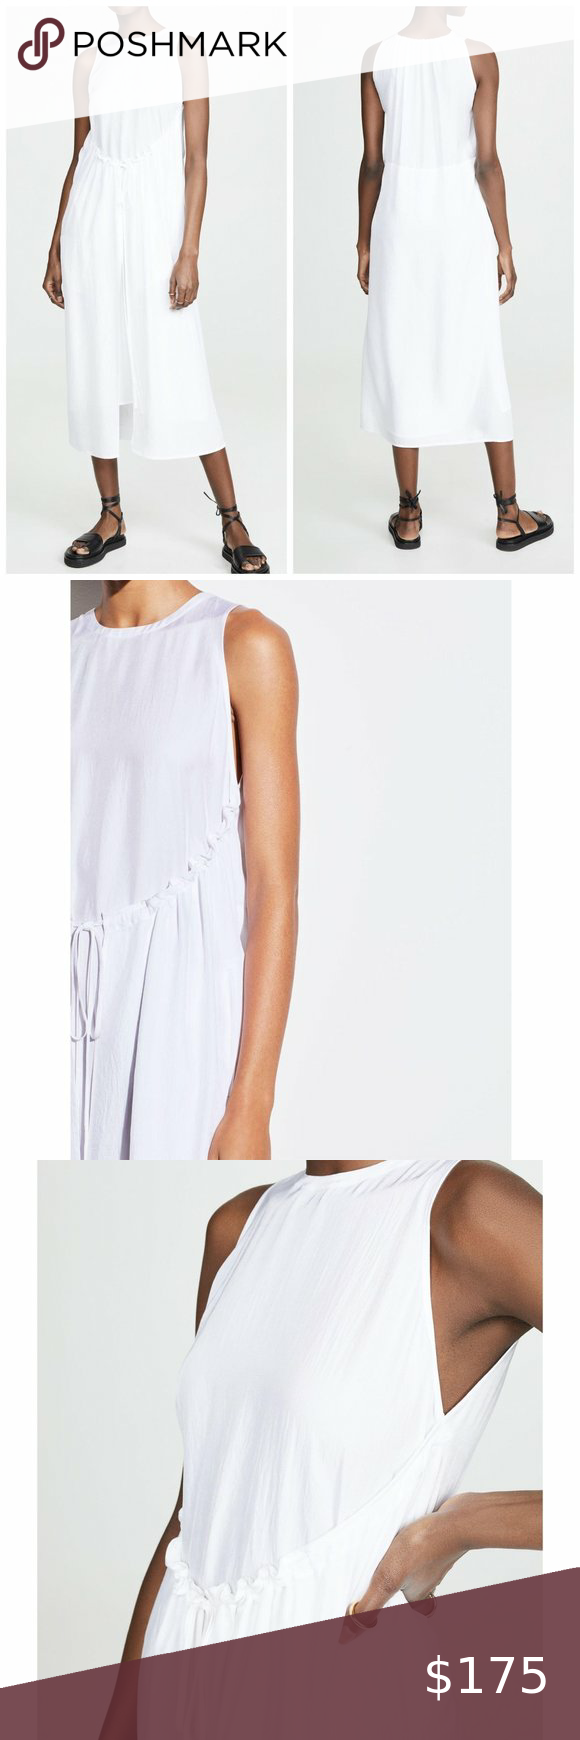 Nwt Vince Shirred Drawstring Dress In Optic White Brand New With Tags Vince Shirred Drawstring Sleev Drawstring Dresses Midi Dress Sleeveless Twist Front Dress [ 1740 x 580 Pixel ]